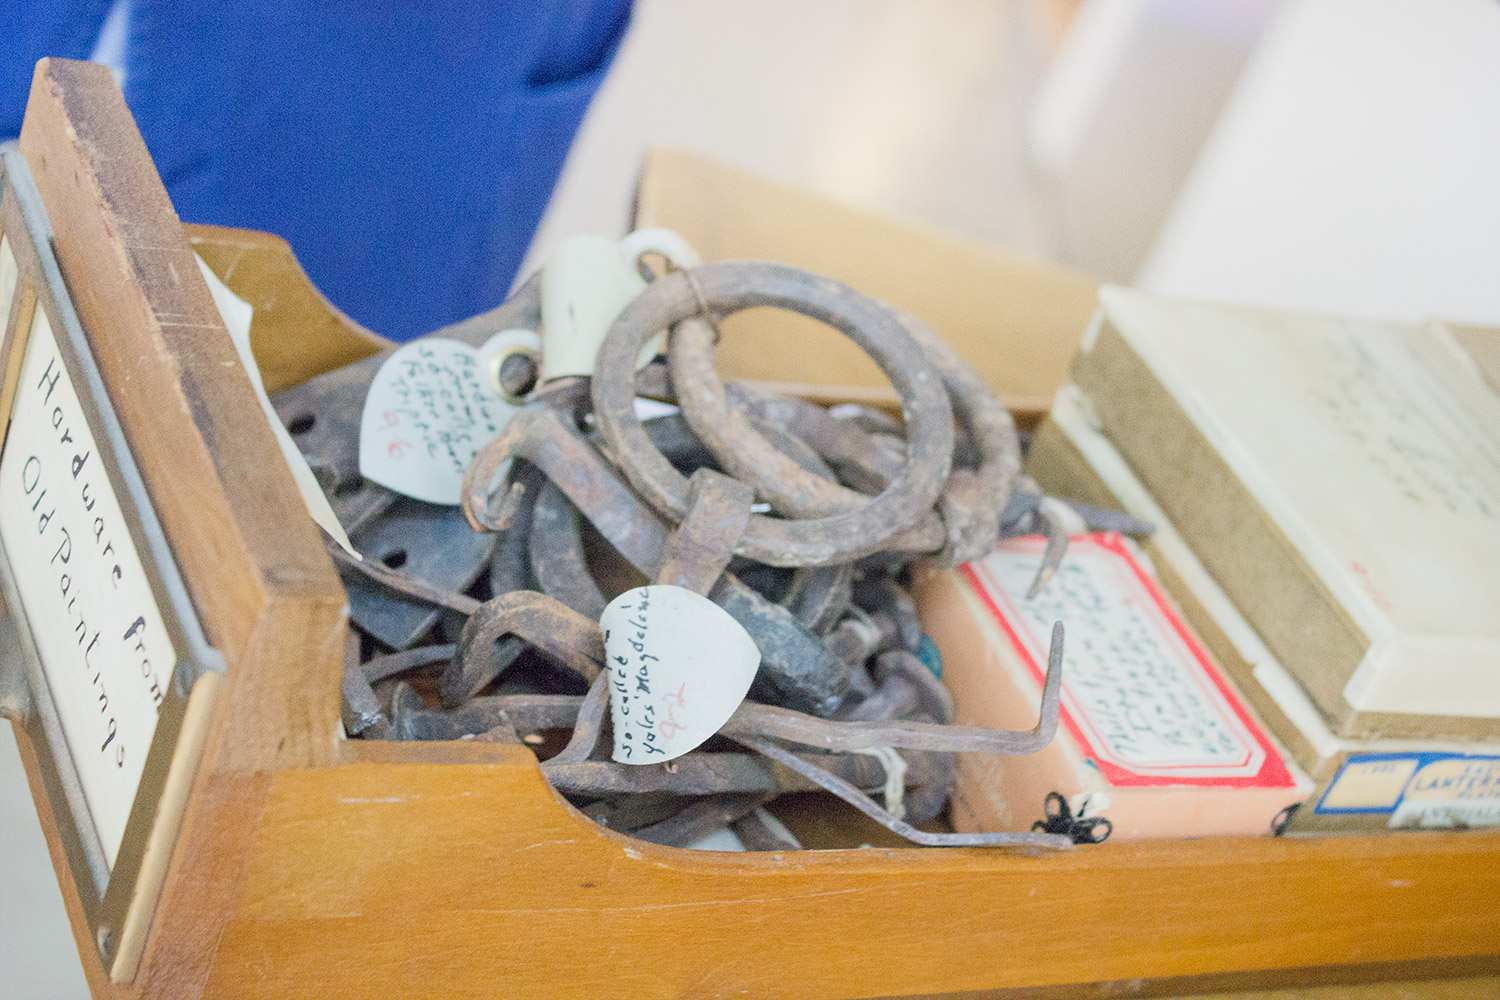 These hand-wrought metal nails and rings were once used to hang panel paintings. Each is labeled with the name of the work to which it originally belonged.